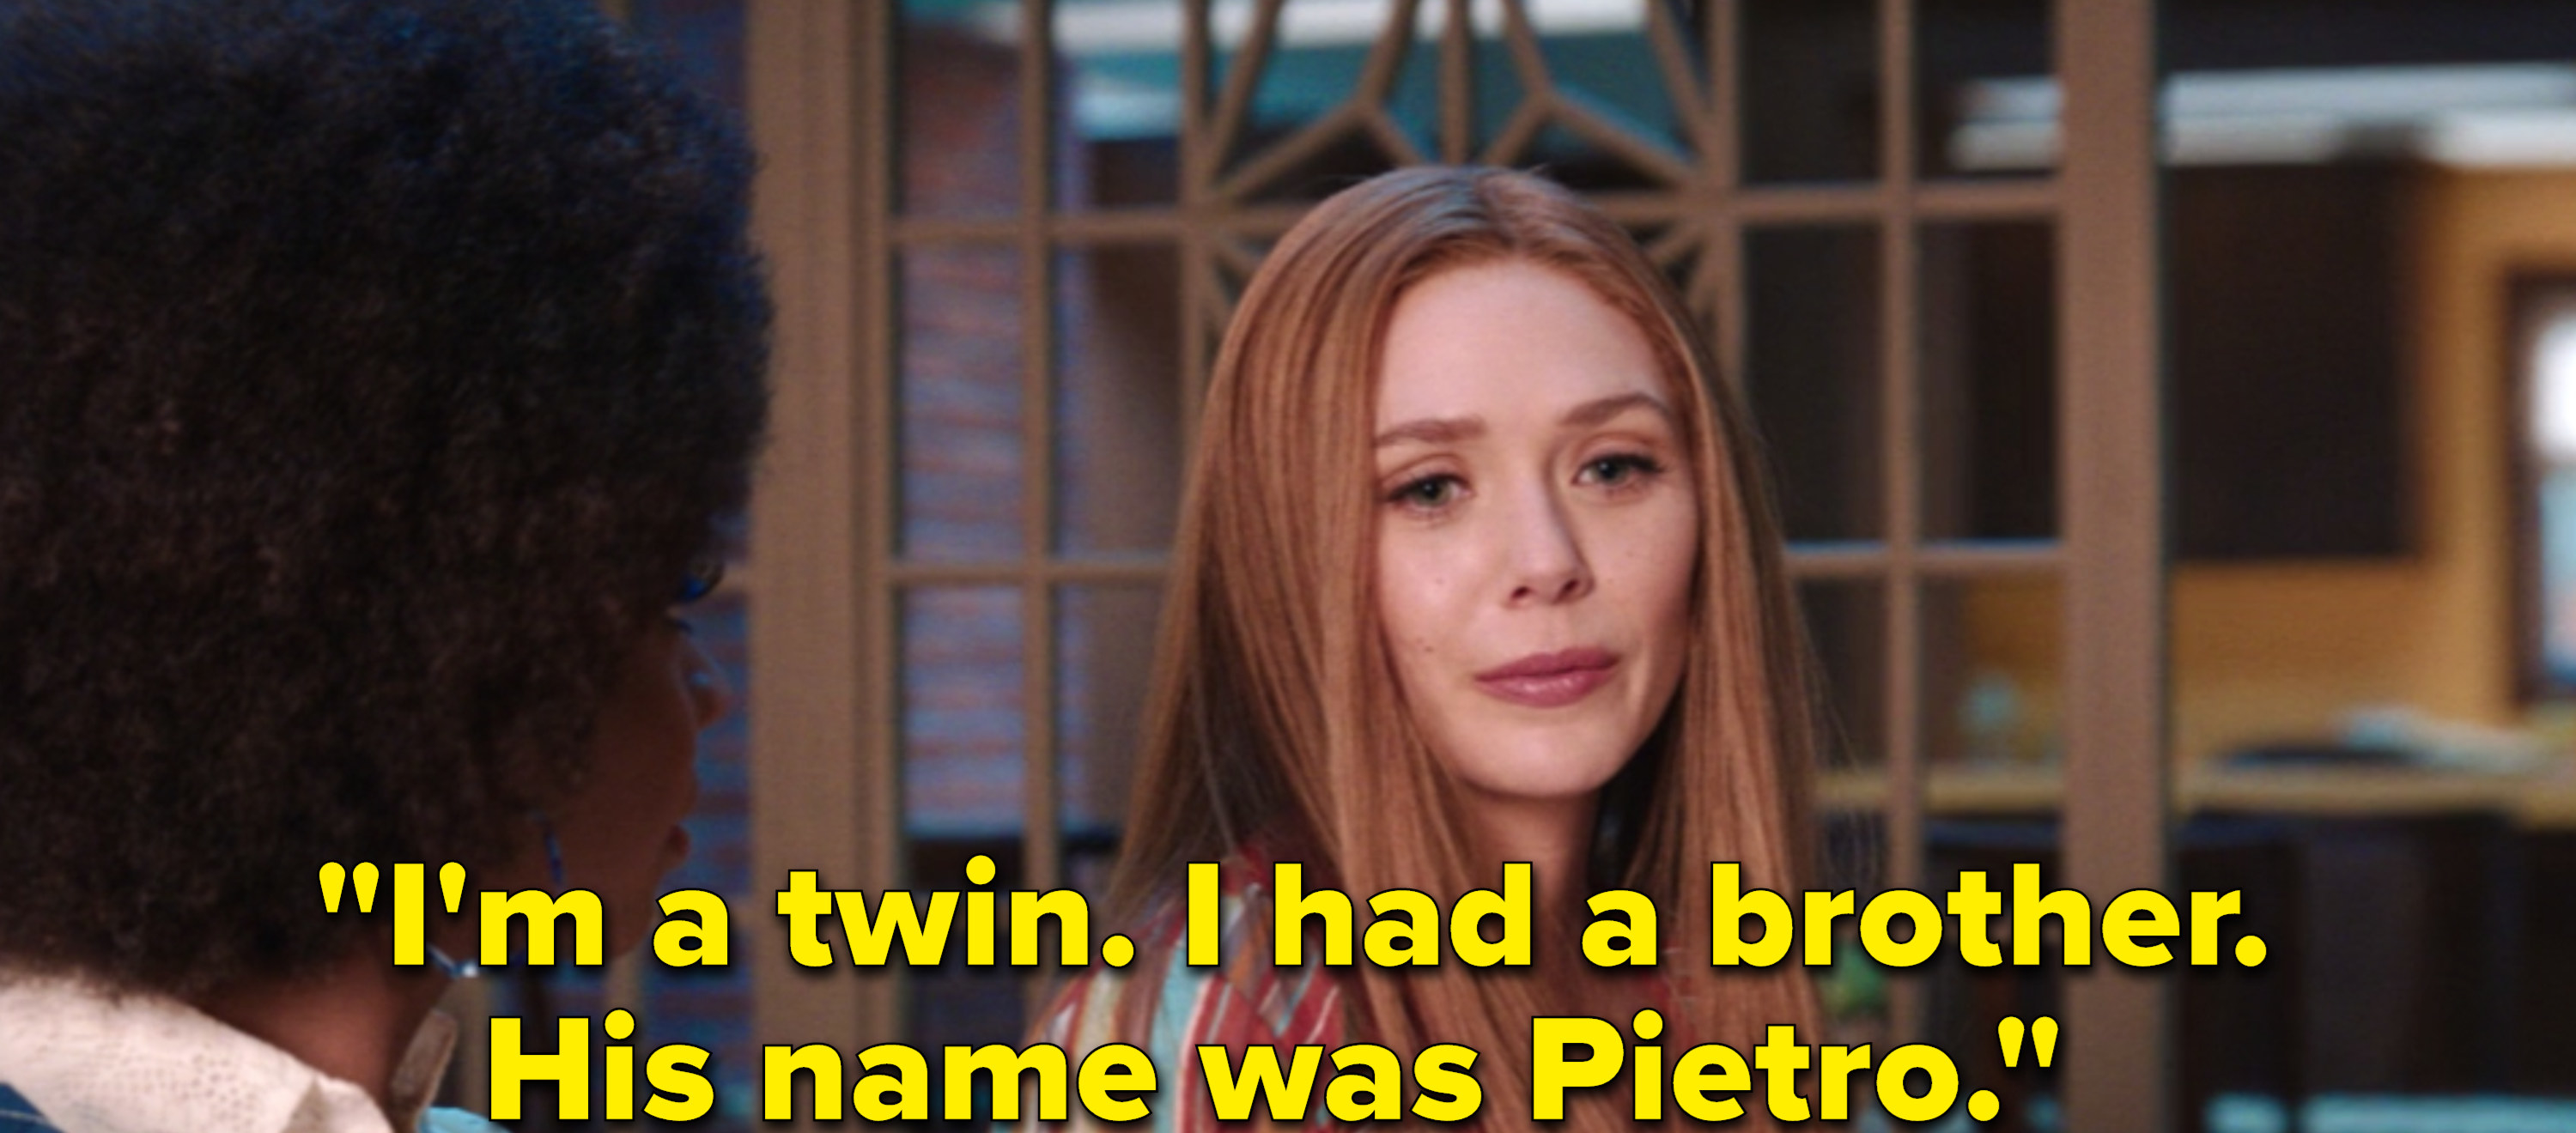 """Wanda Maximoff says to Monica, """"I'm a twin. I had a brother. His name was Pietro"""""""